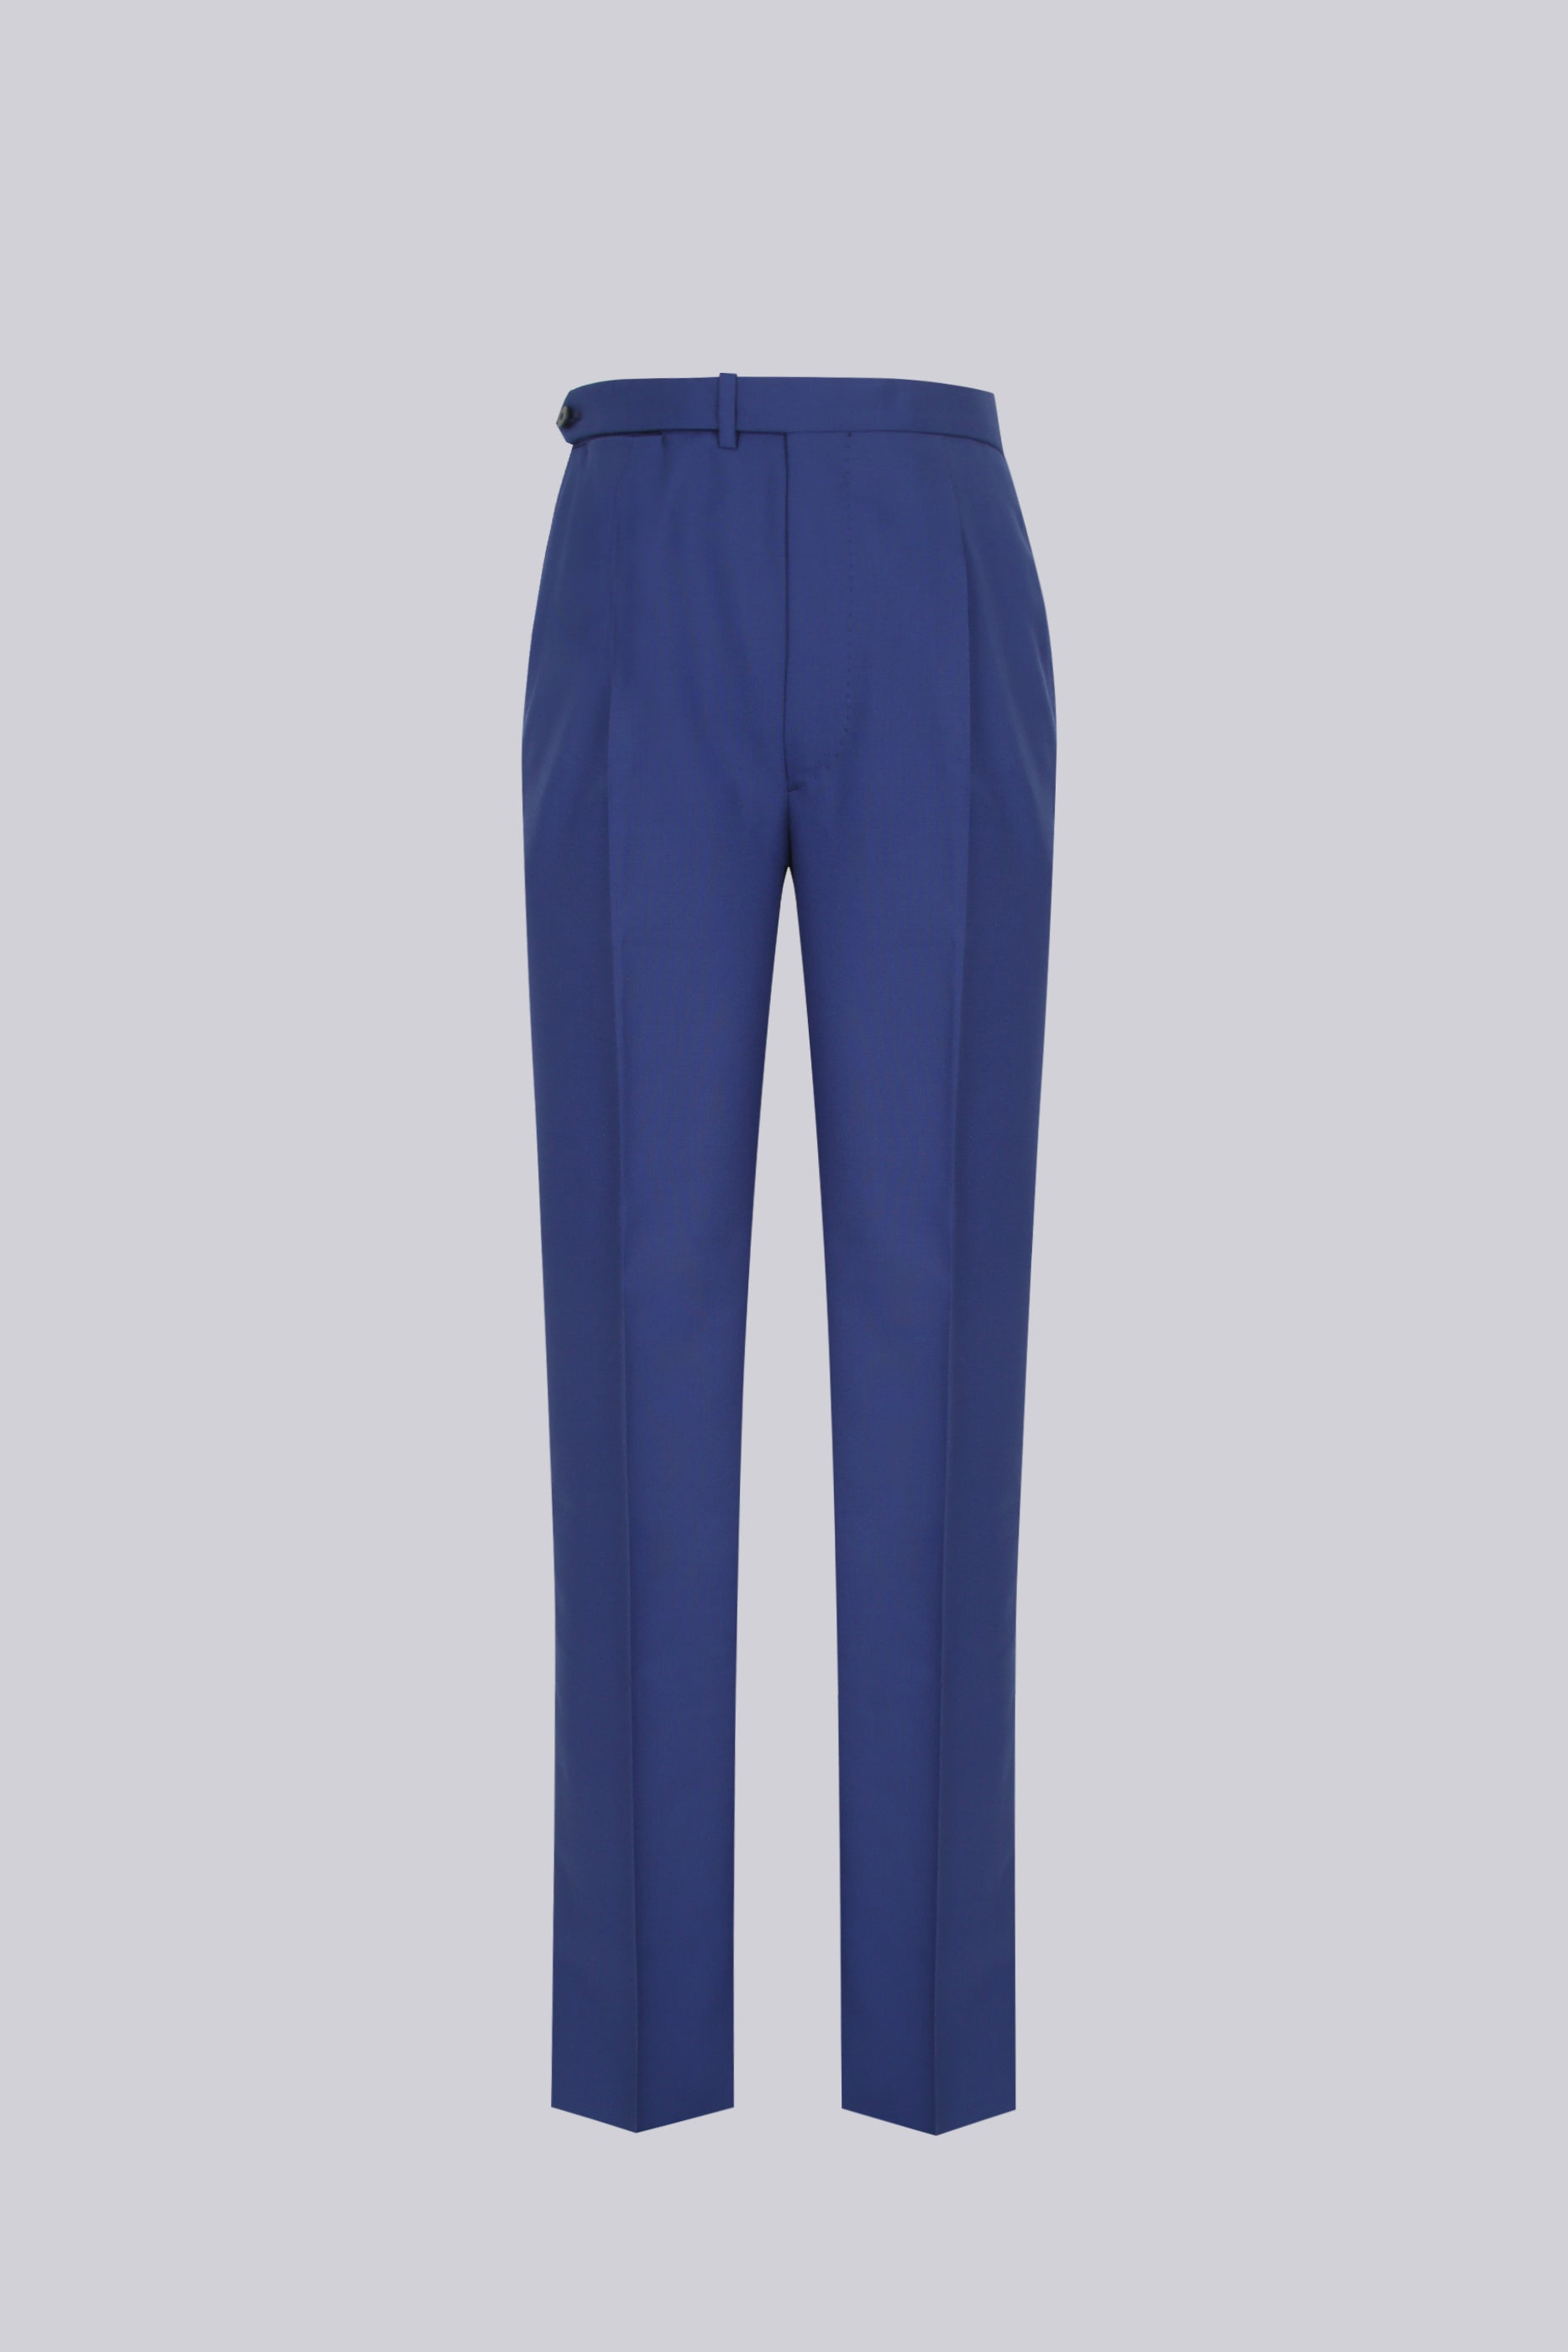 207 Single-pleated in blue wool